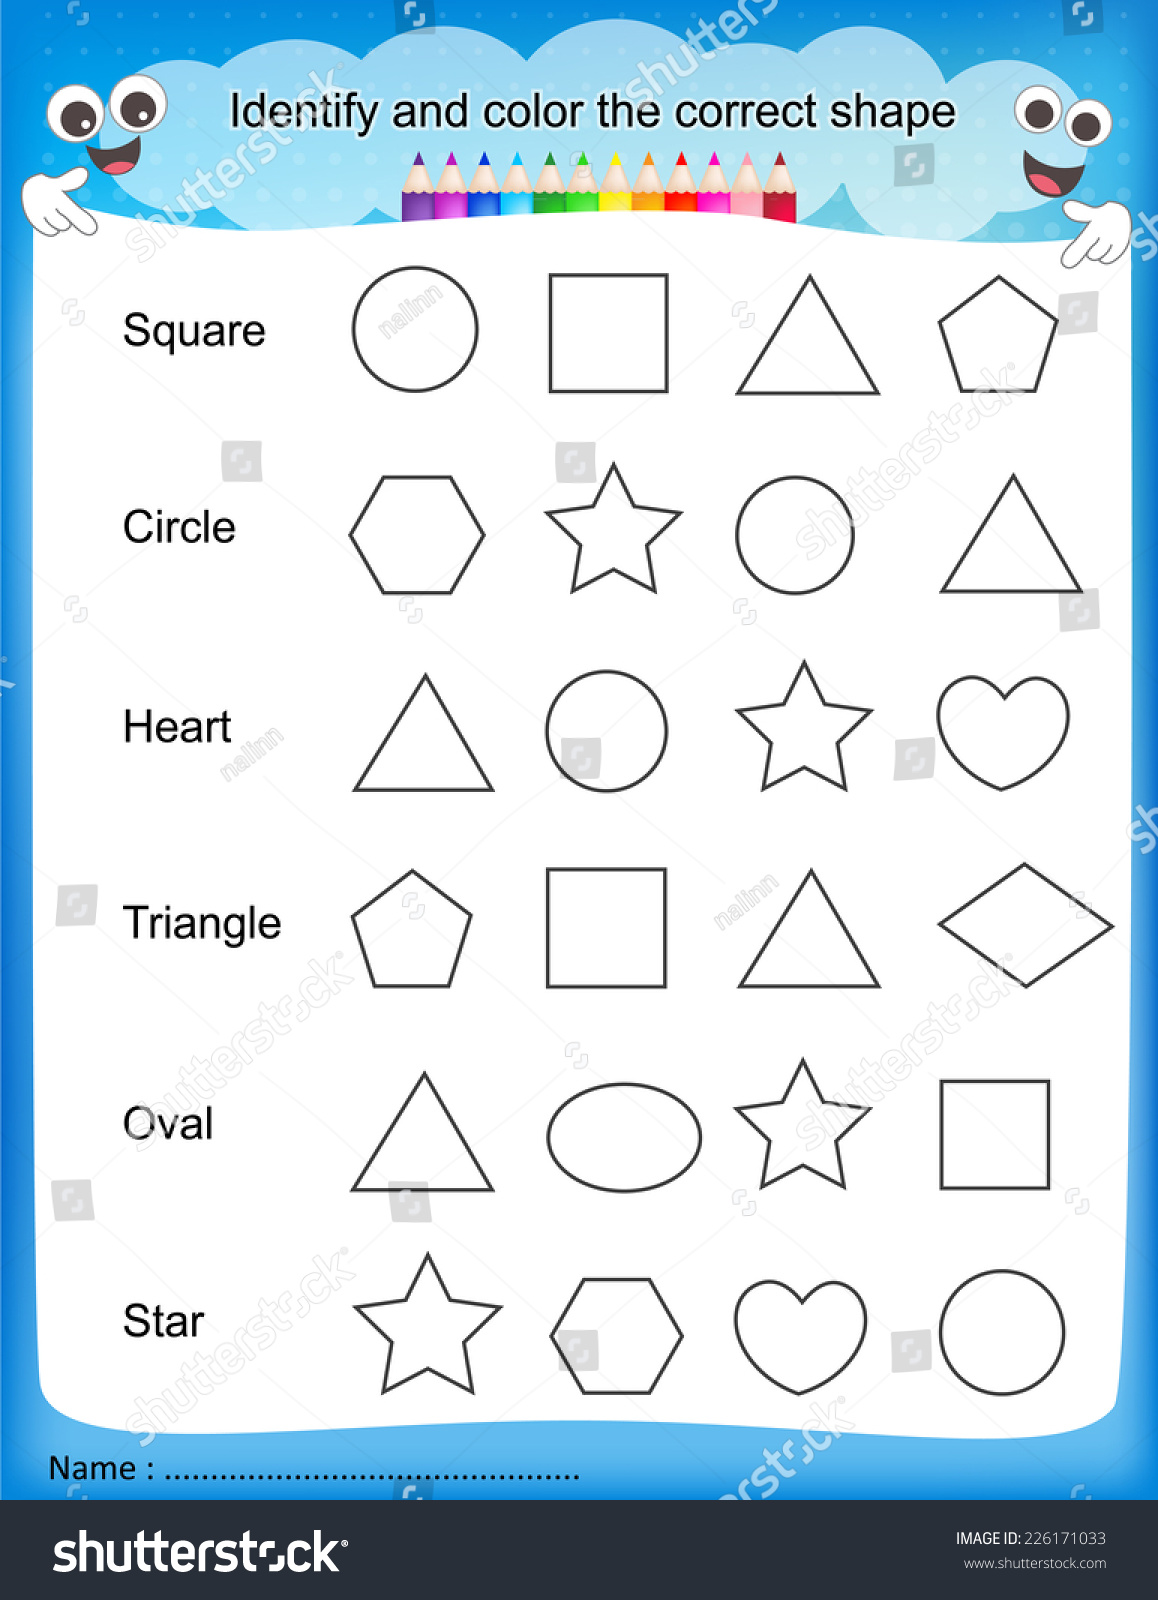 worksheet Identify Shapes Worksheet identify color correct shape colorful printable stock vector and the kids worksheet for pre school kindergarten kids